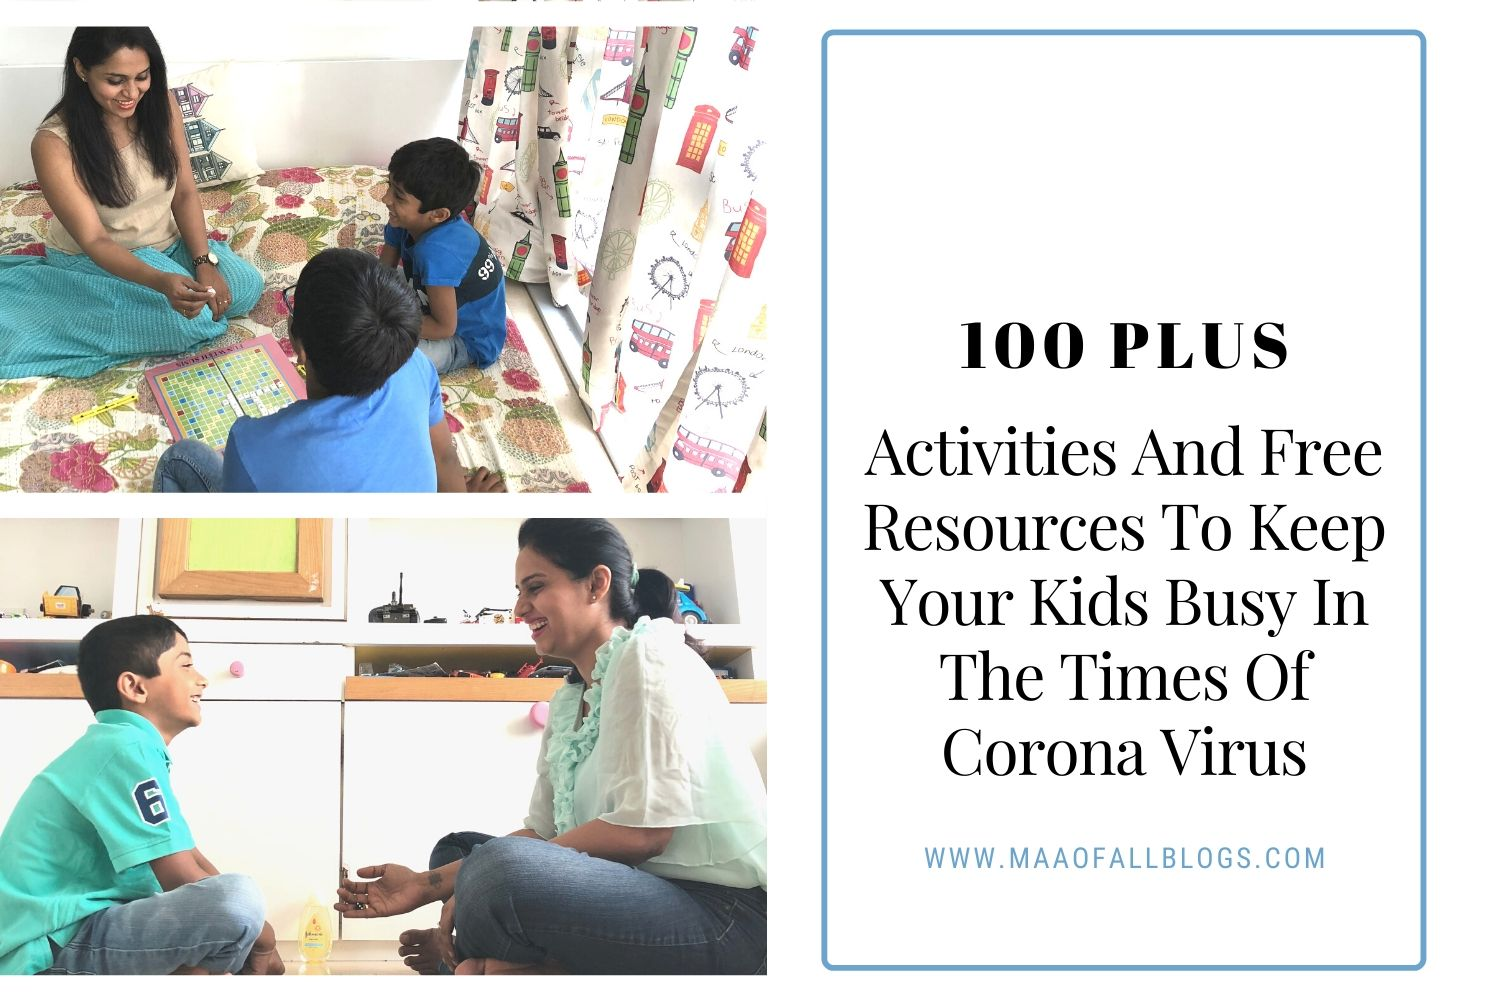 100 plus activities and Free Resources To Keep Your Kids busy In The Times Of Corona